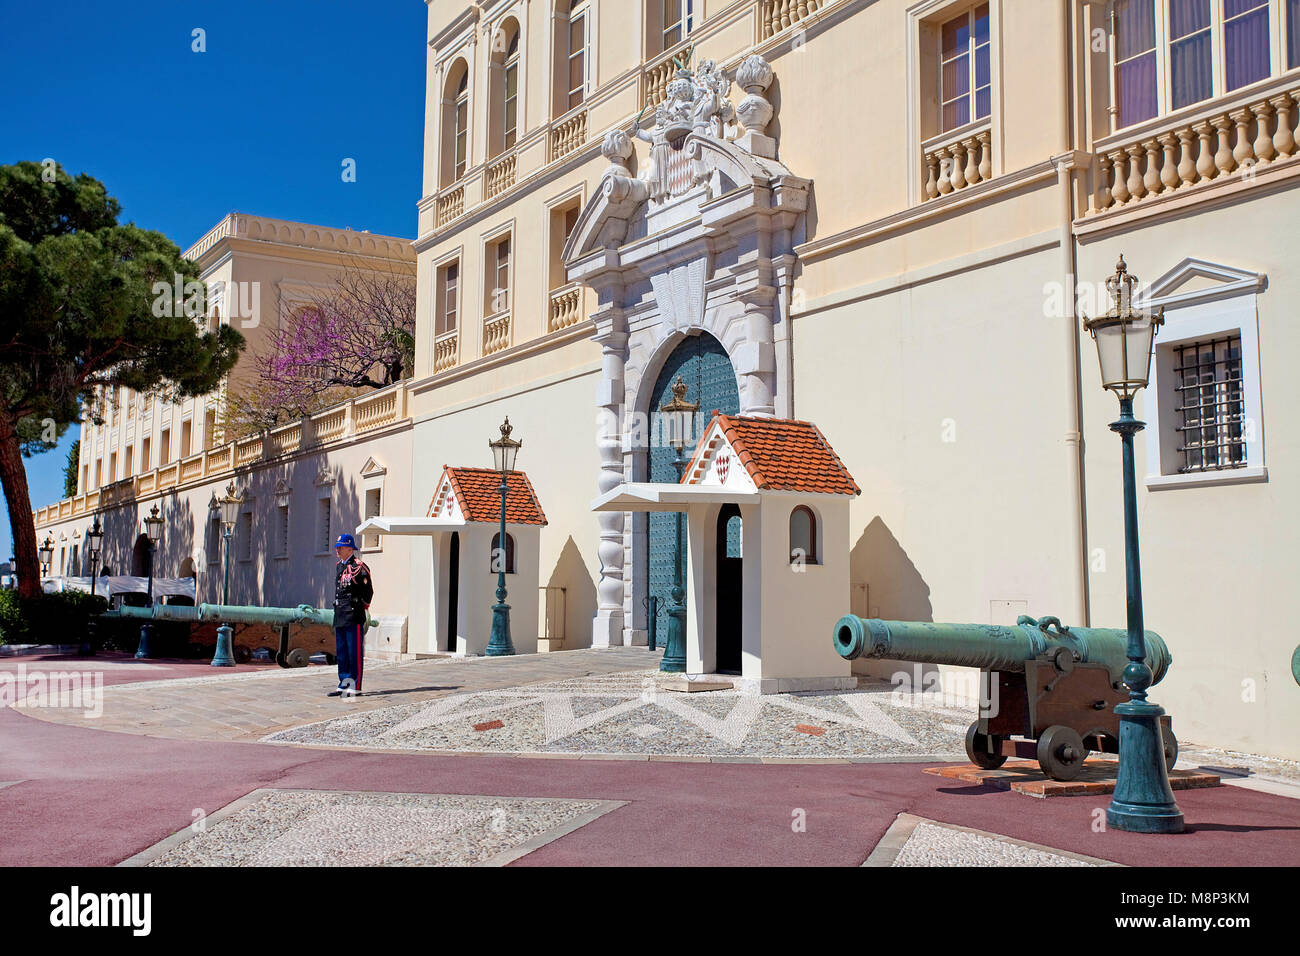 Palace Guard at Palais Princier, Princes Palace of Monaco, official residence of the Sovereign Prince of Monaco, - Stock Image